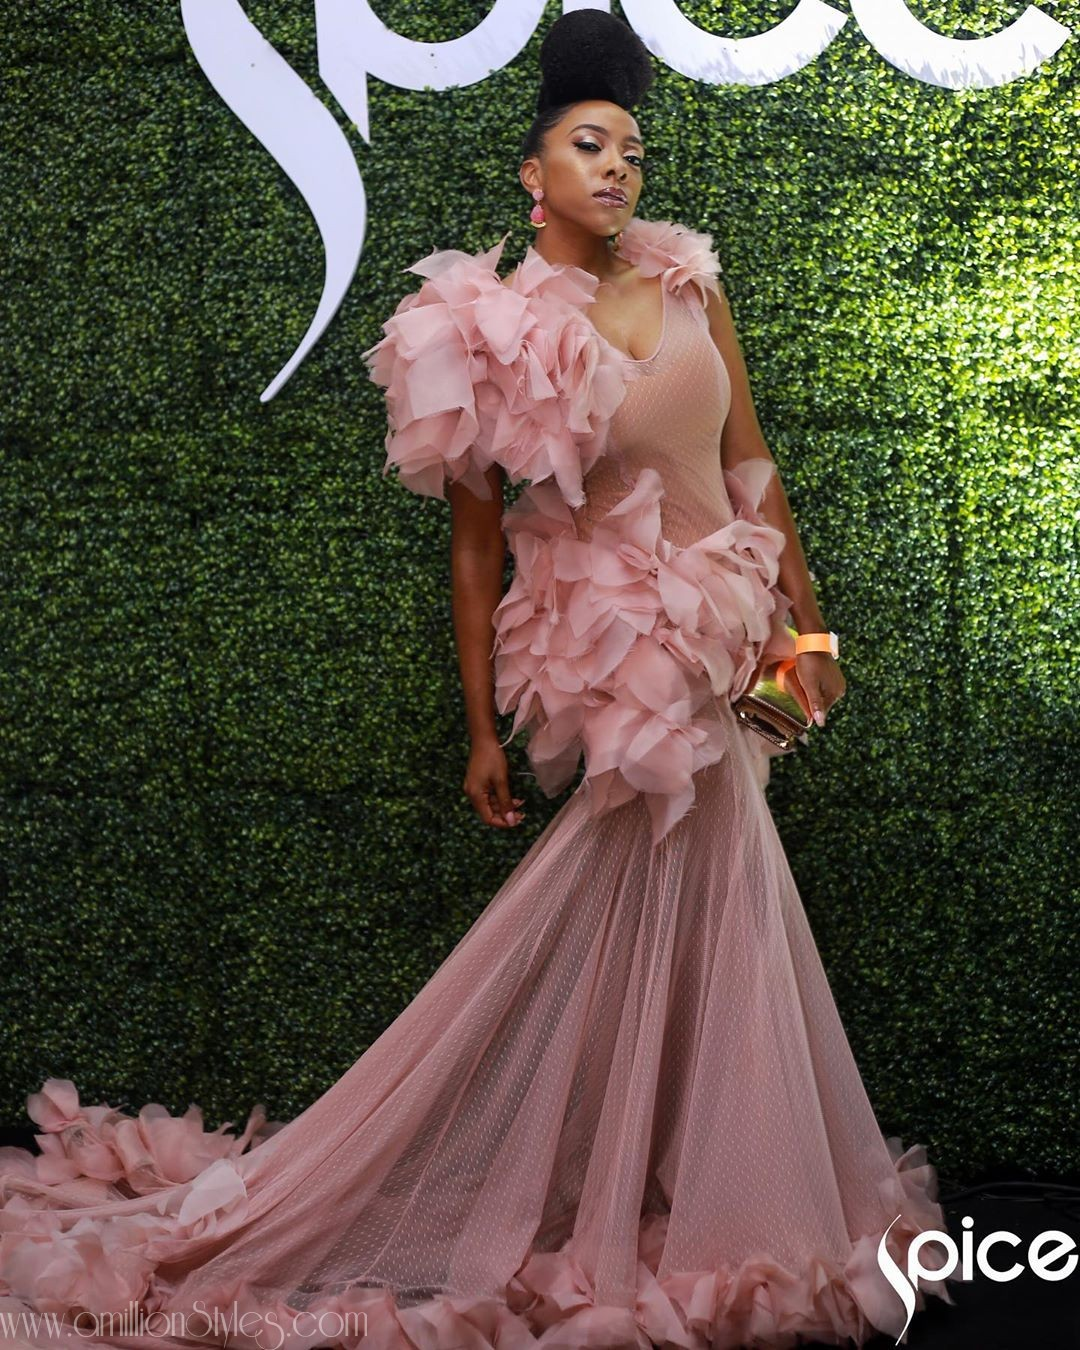 All The Gorgeous Looks At Spice Lifestyle Honors Awards